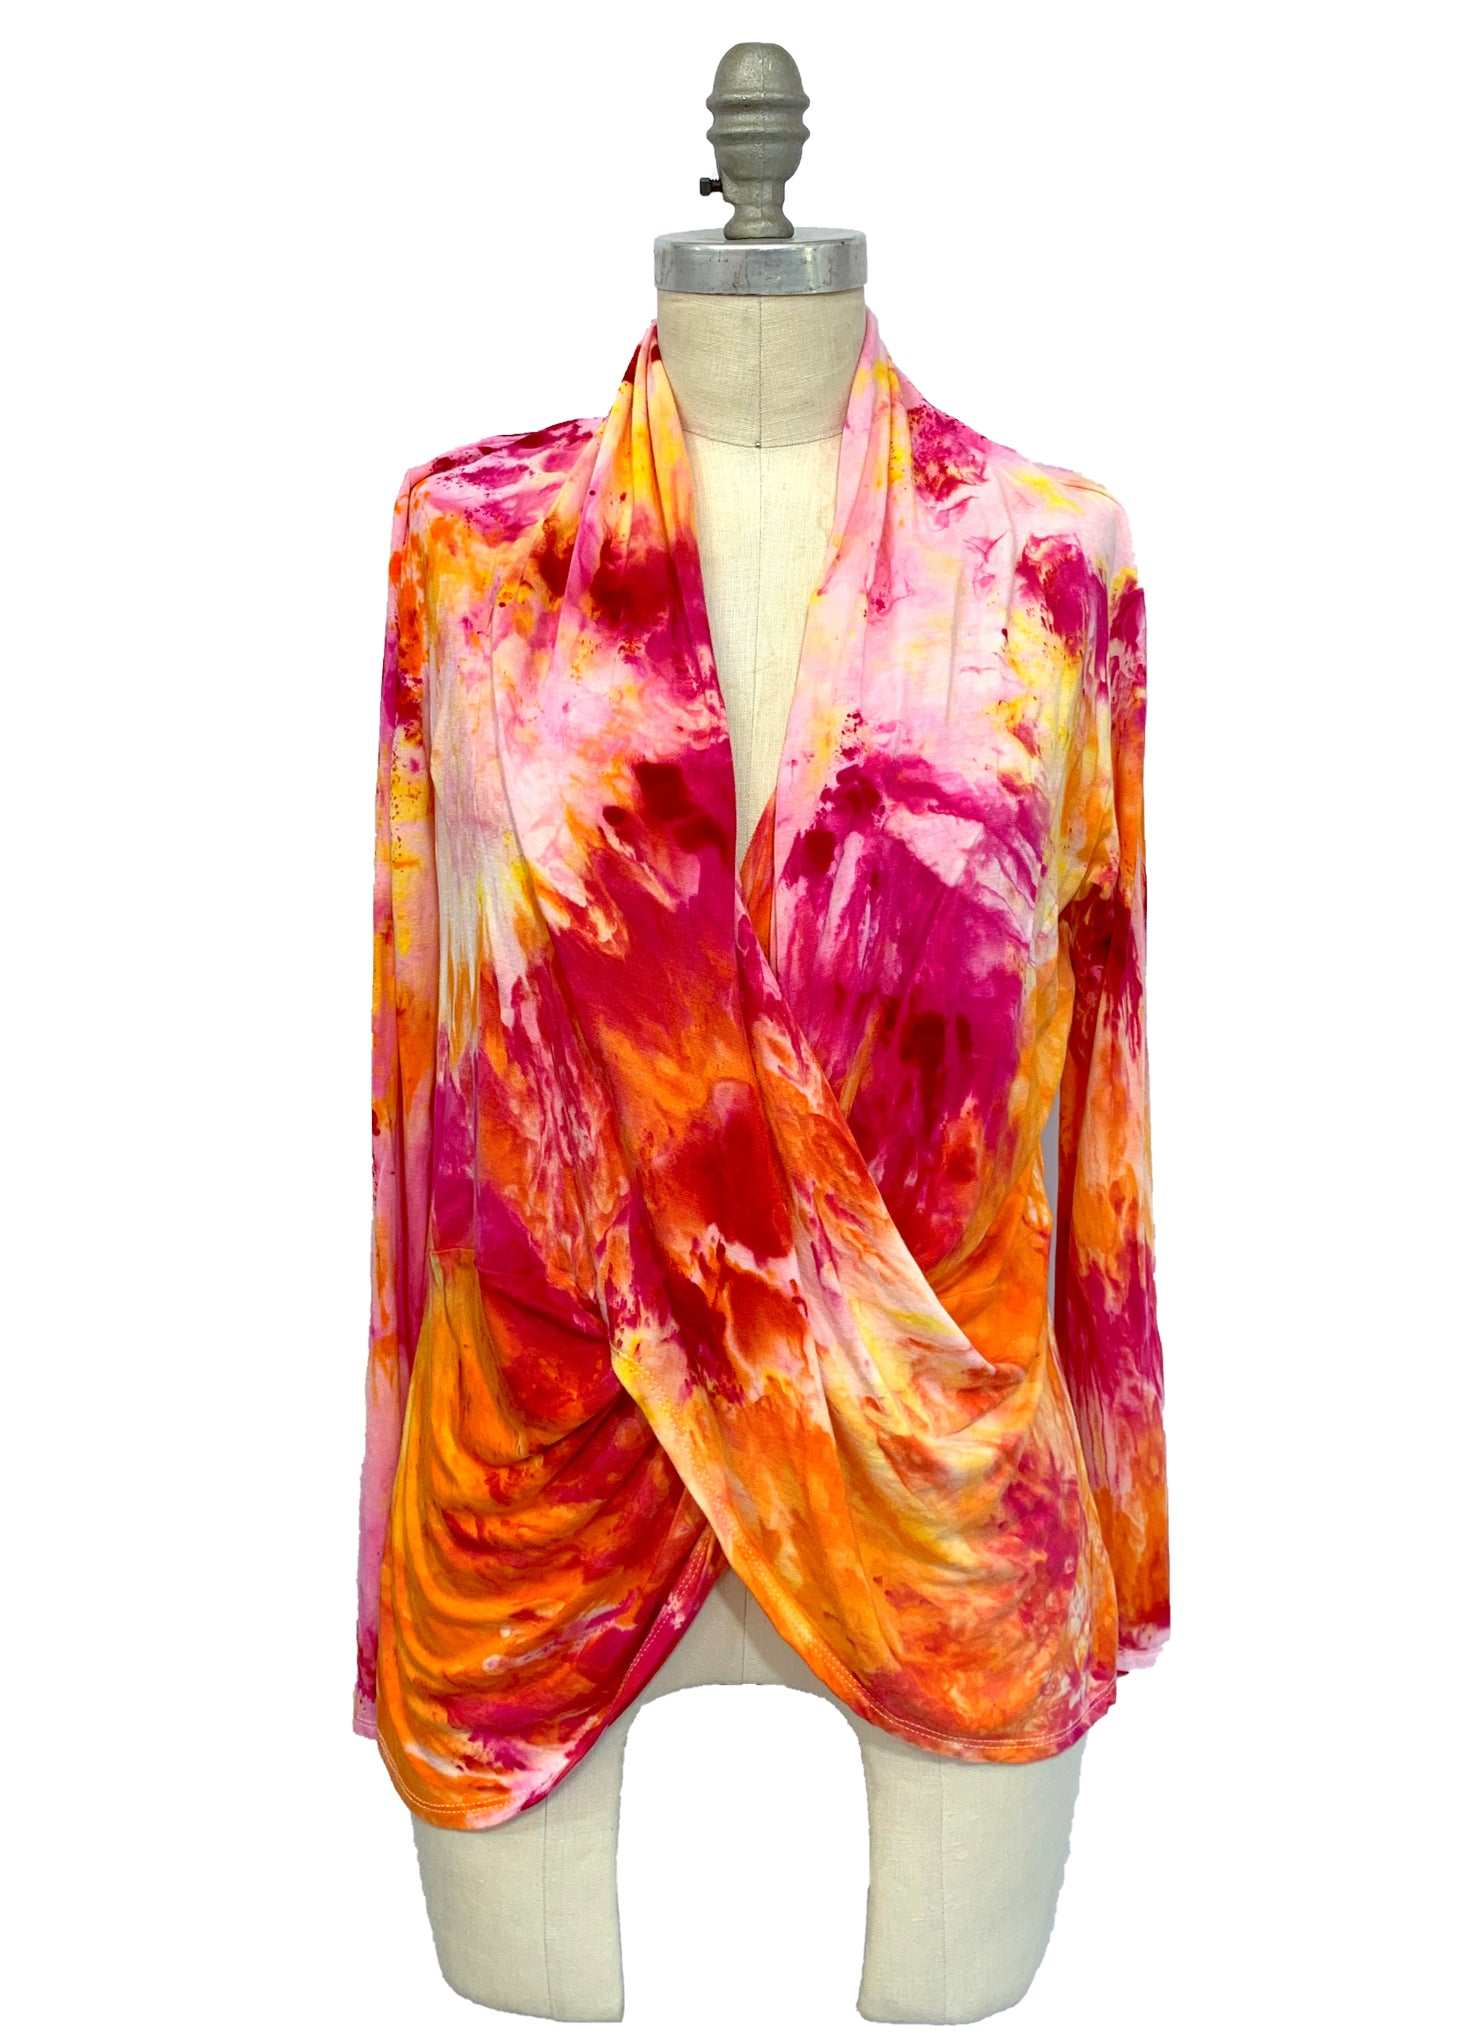 Hand Dyed Criss Cross Blouse in